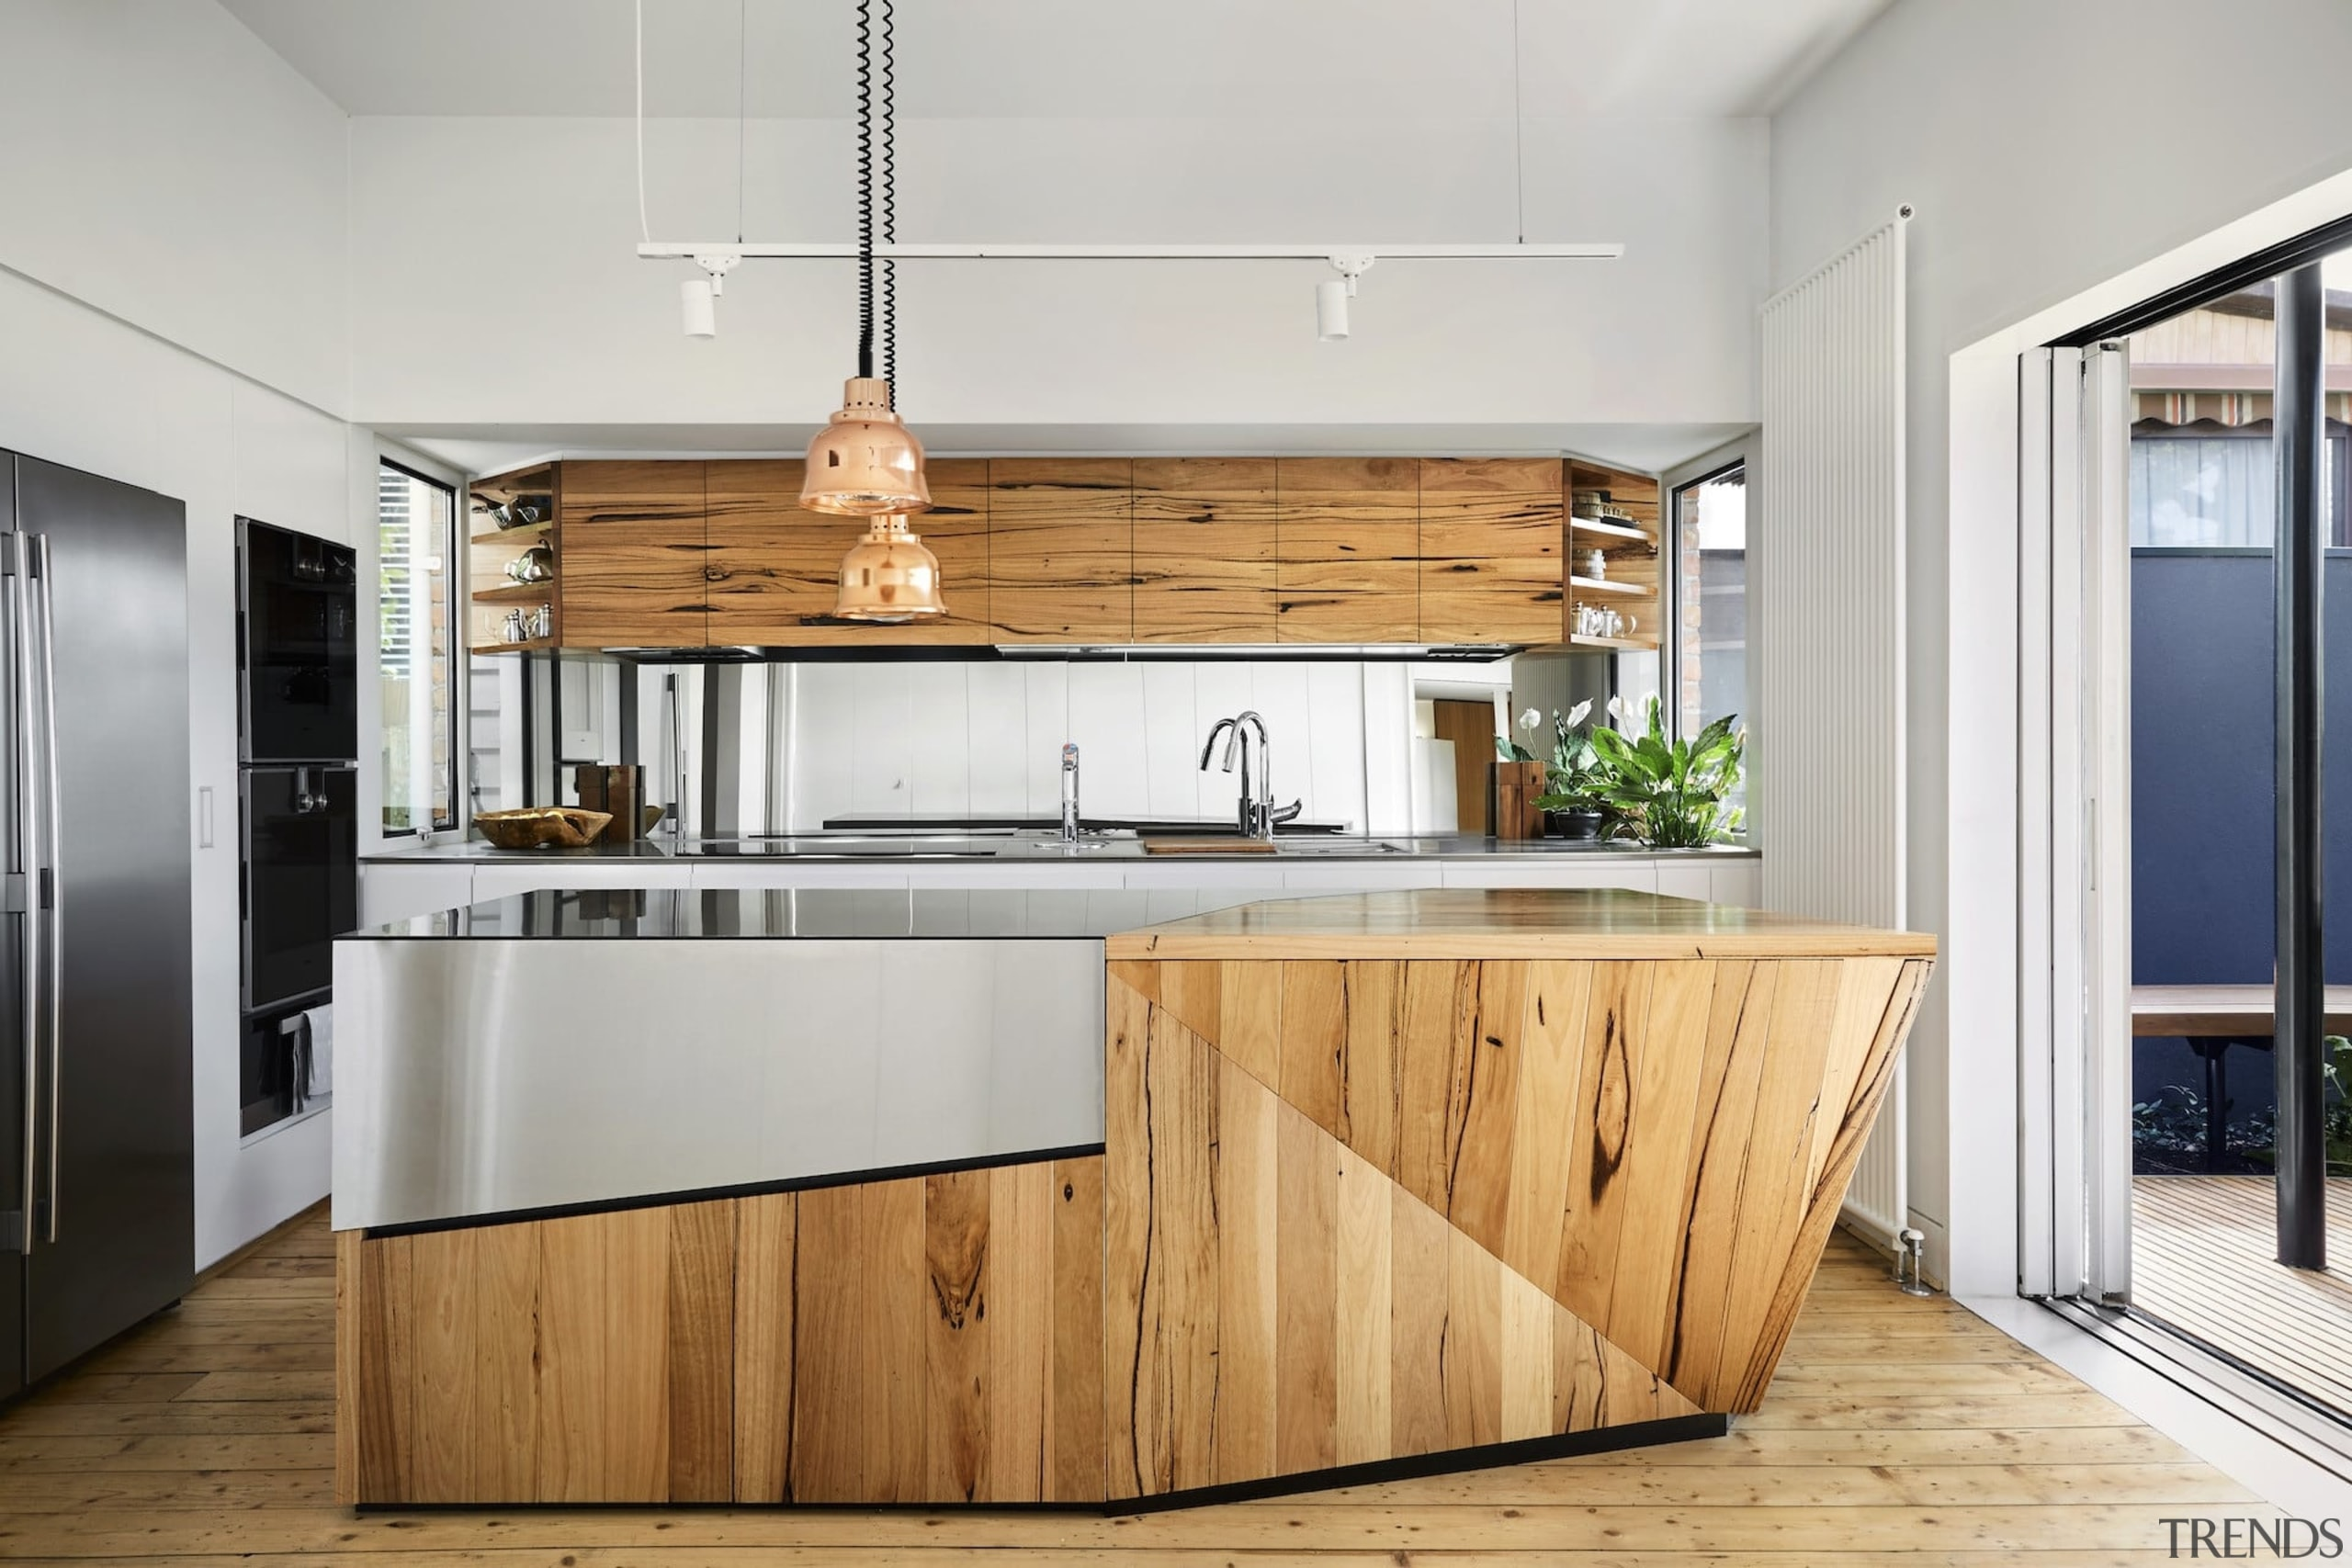 Austin Maynard Architects – Highly Commended – 2018 cabinetry, countertop, cuisine classique, interior design, kitchen, white, gray